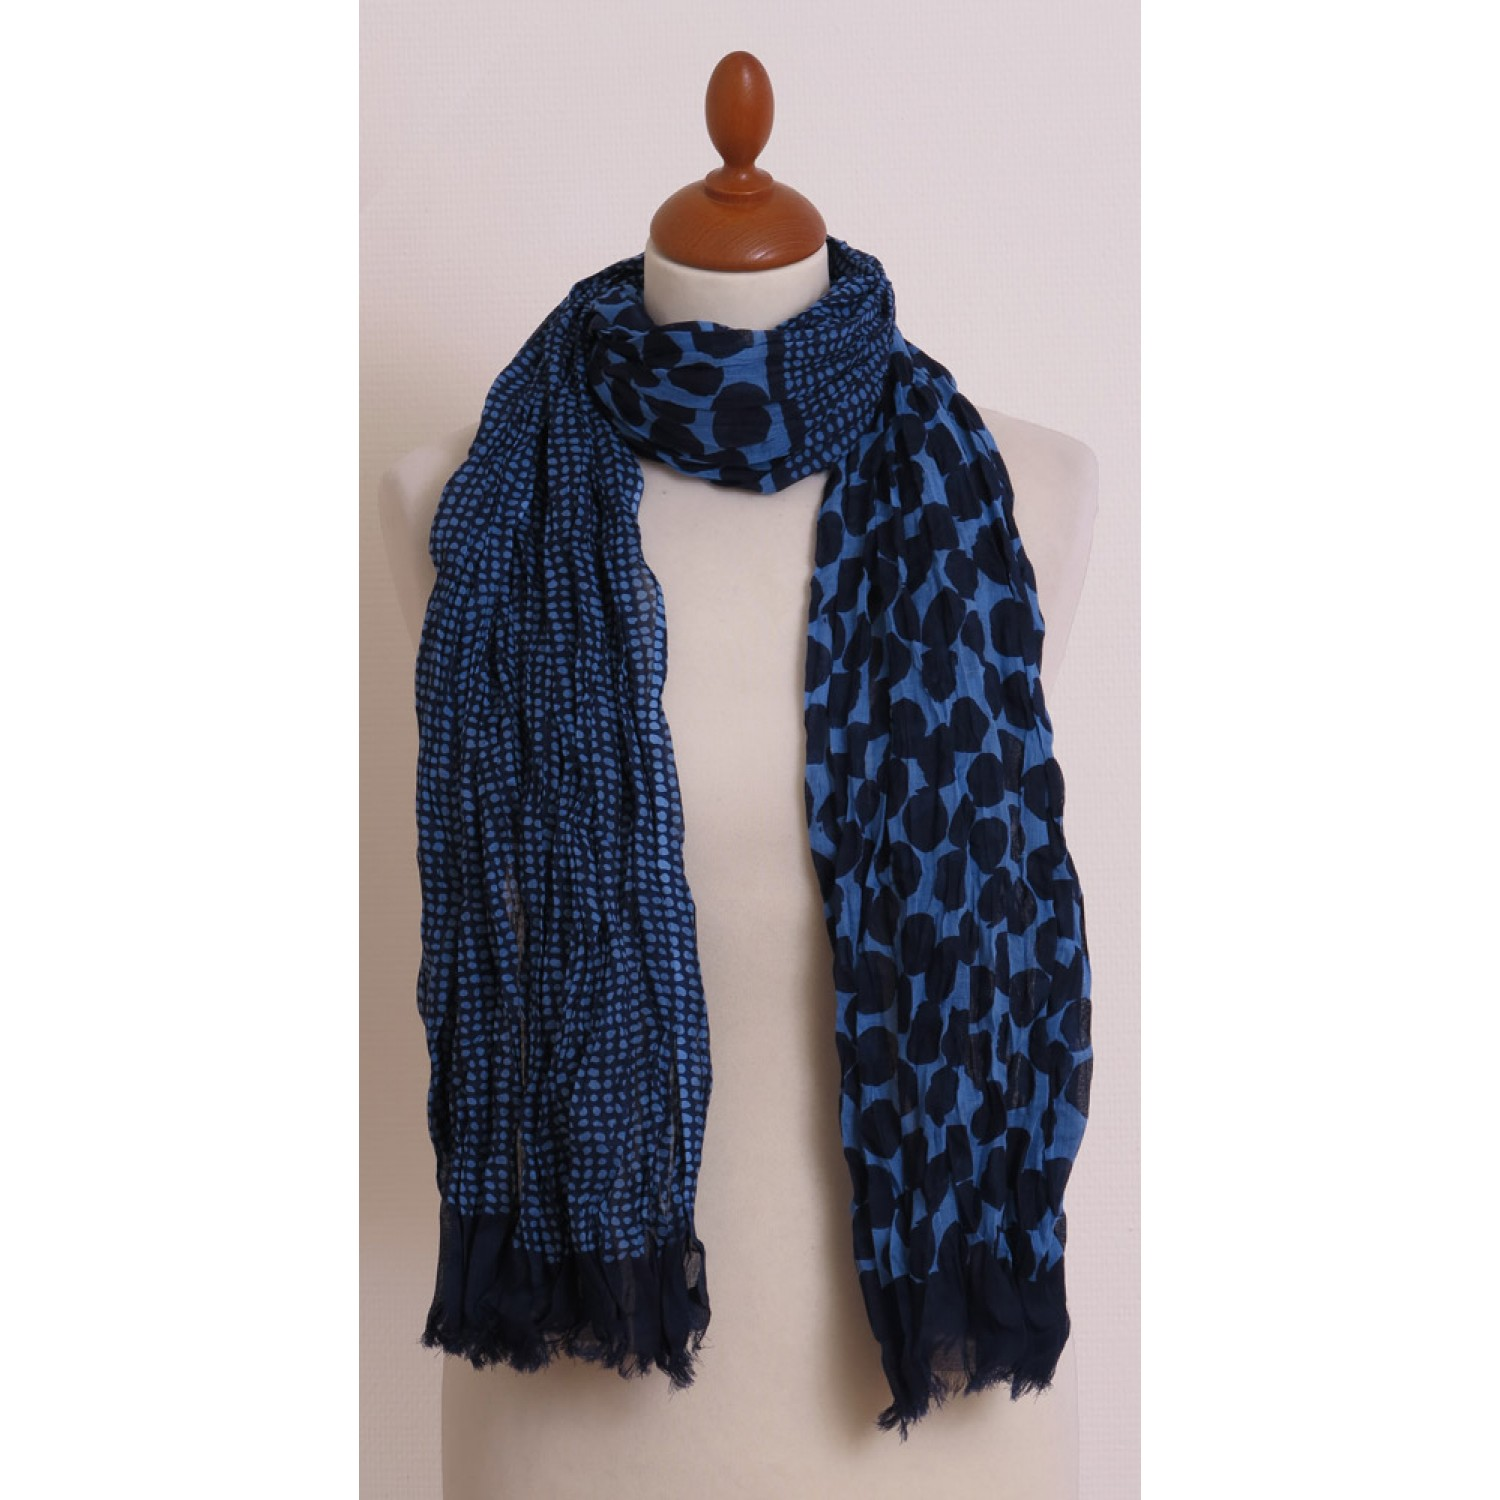 Bettwäsche Made In Germany Blue Scarf With Dots Pattern Made Of Organic Cotton By Billbillundbill